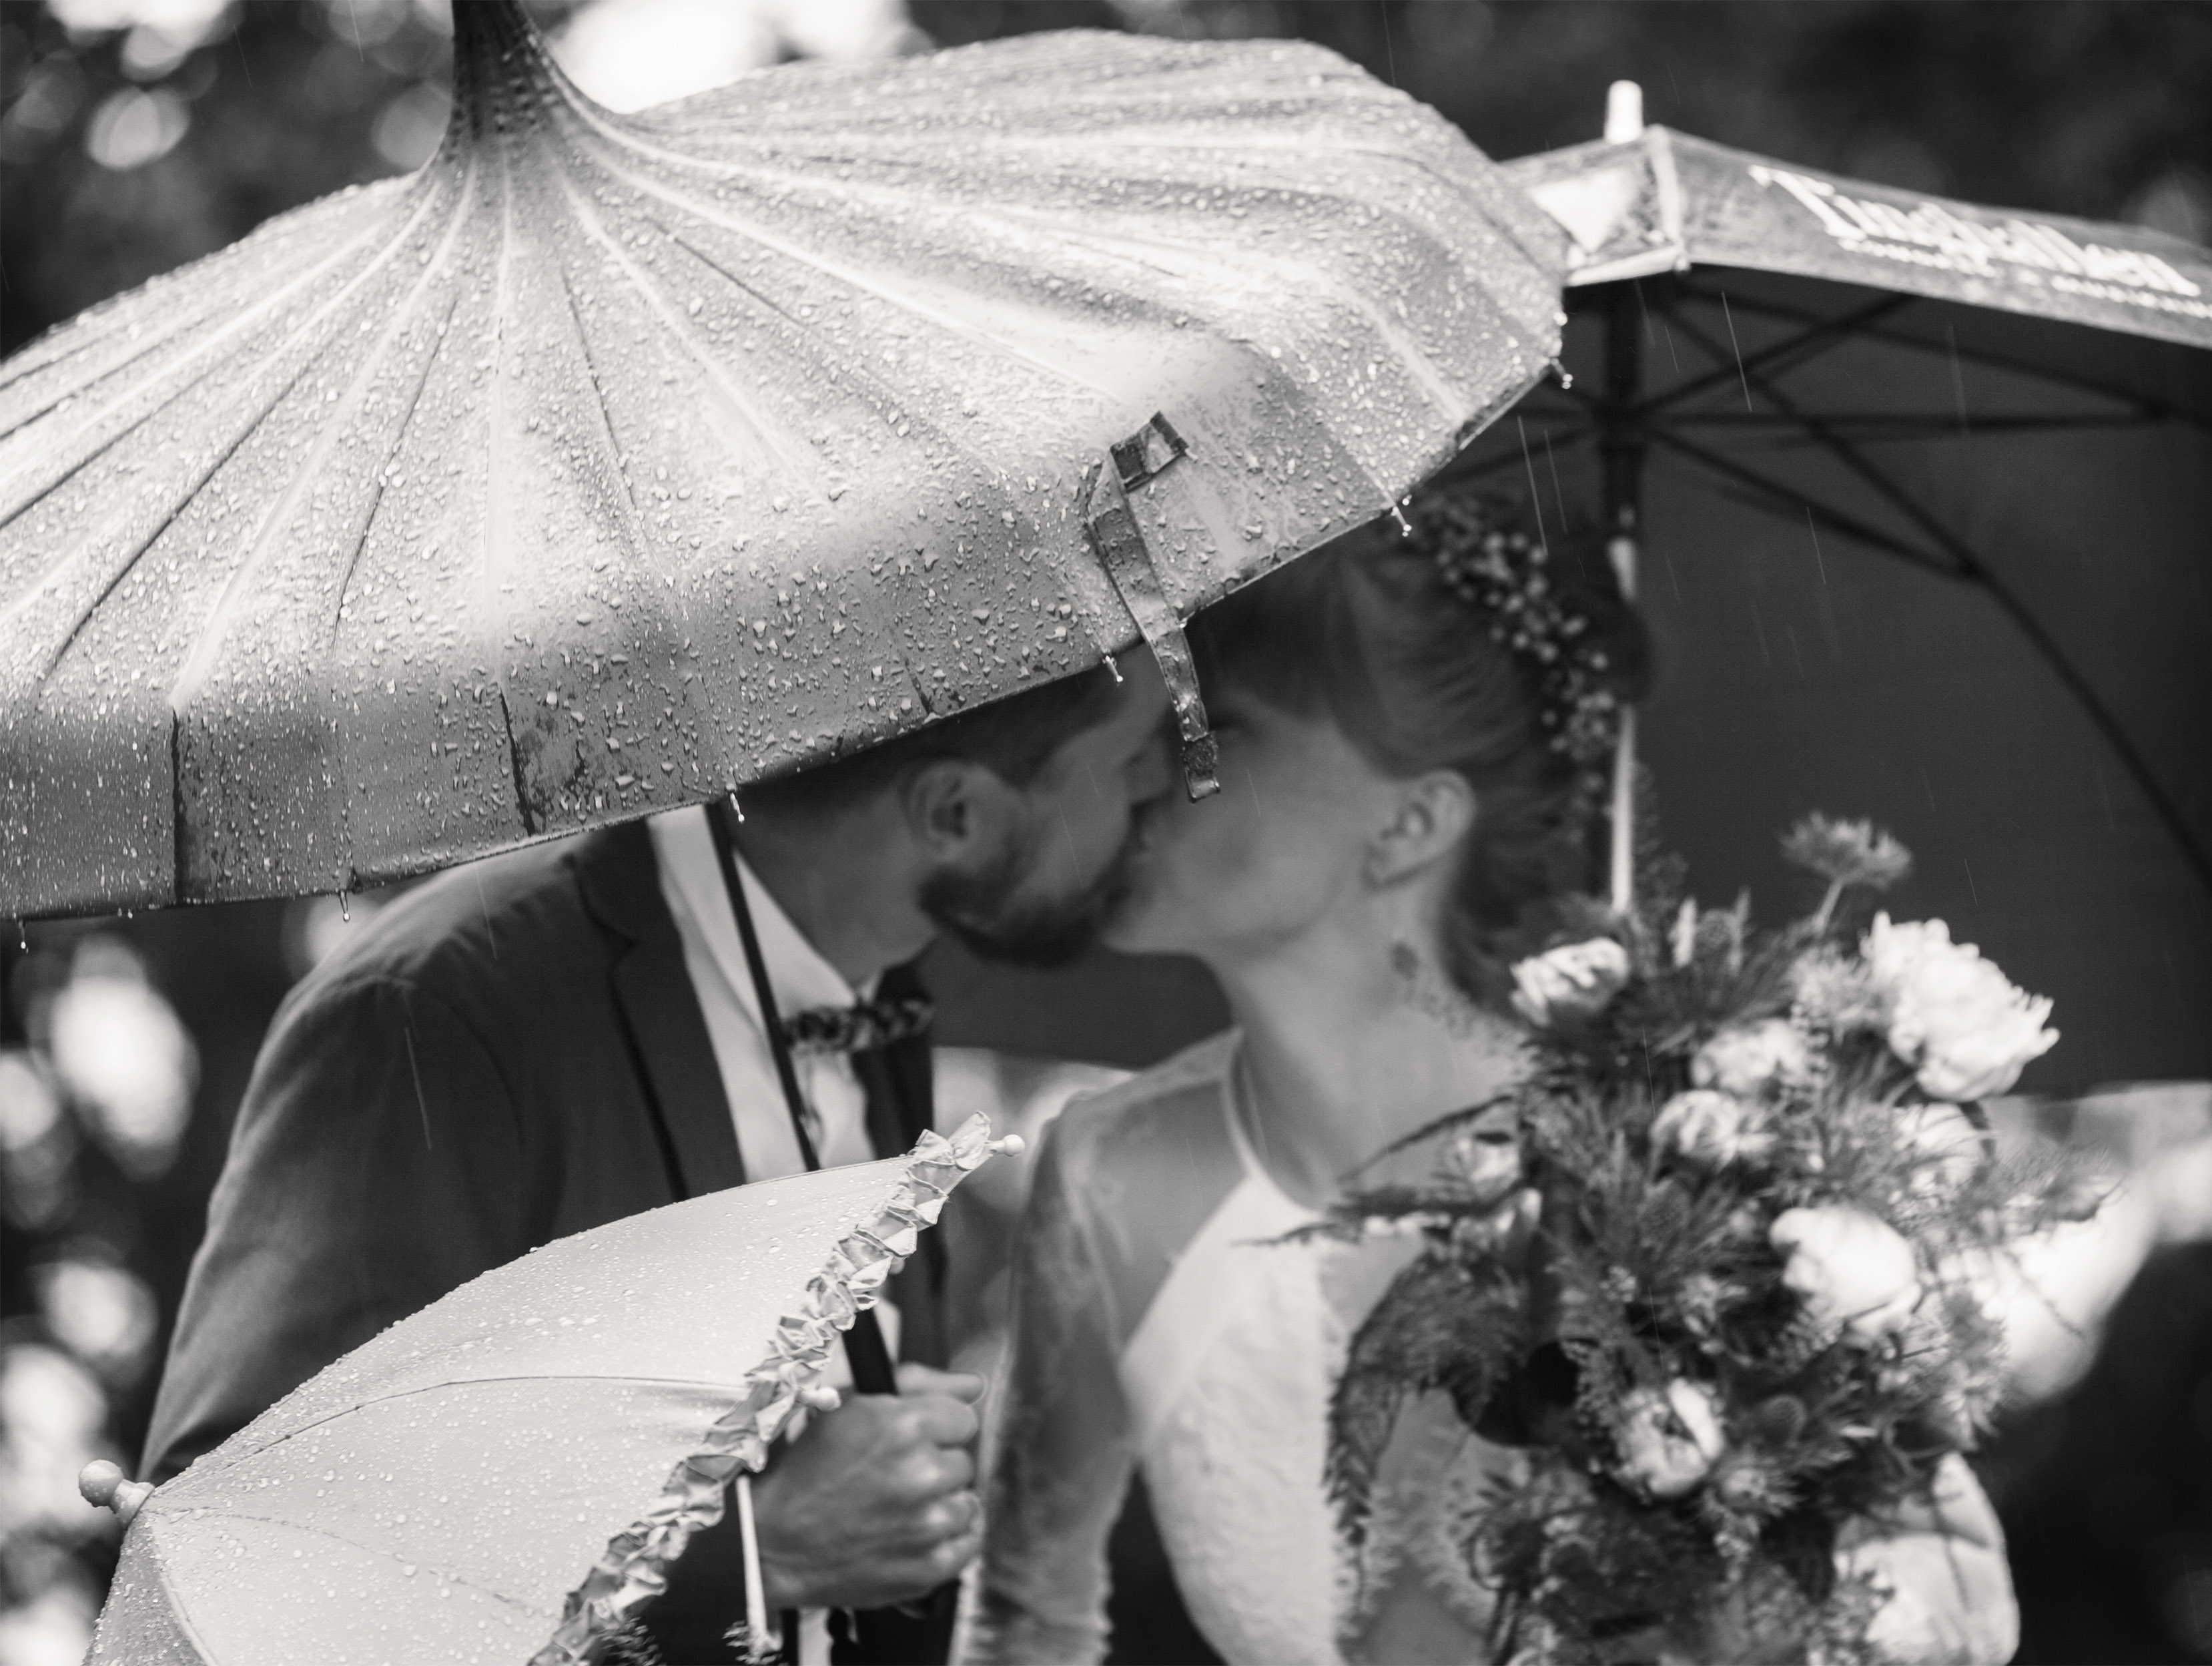 rain-wedding-kiss-flowers-umbrella-photo